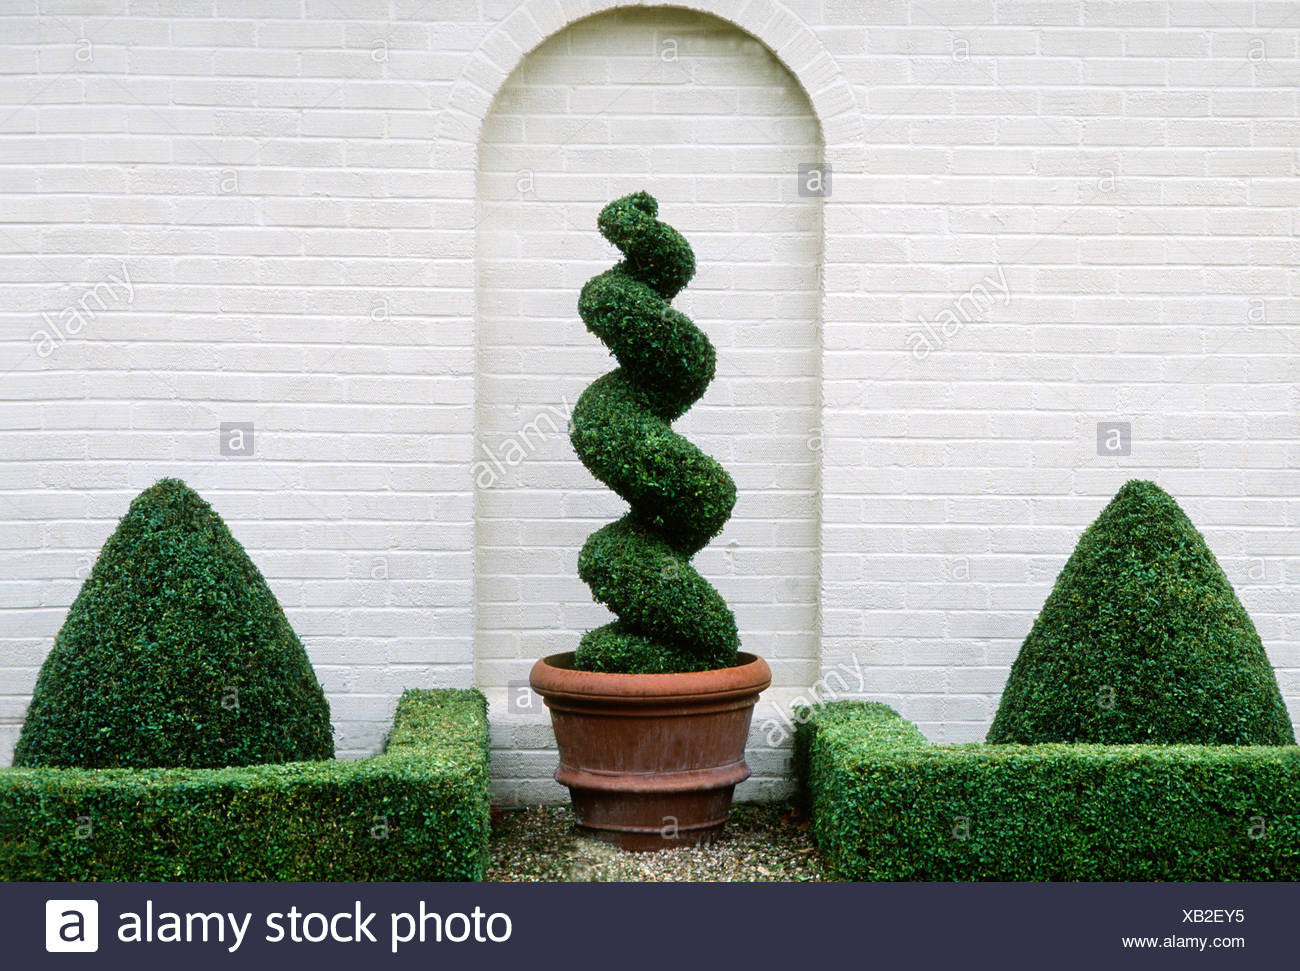 Garden Box Topiary Spiral Design Plants Geometric Wall Arch Clipped Hedges Buxus Hedge Stock Photo Alamy